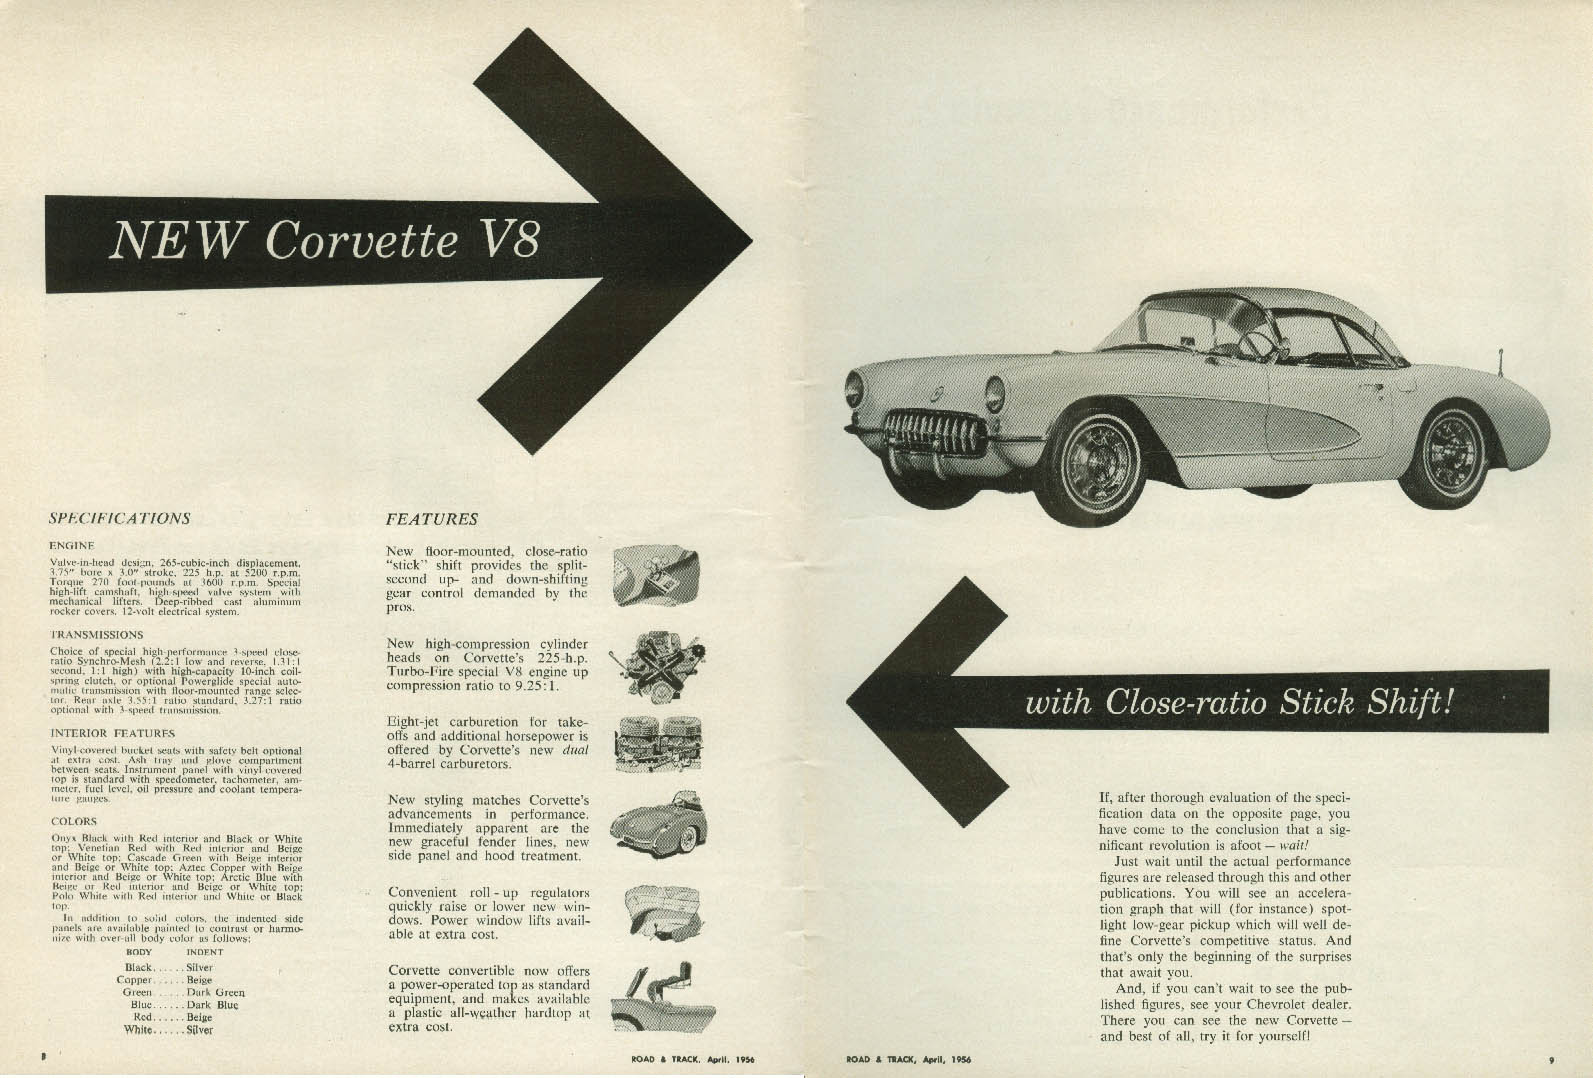 New Corvette V8 with Close-ratio Stick Shift! Ad 1956 Chevrolet